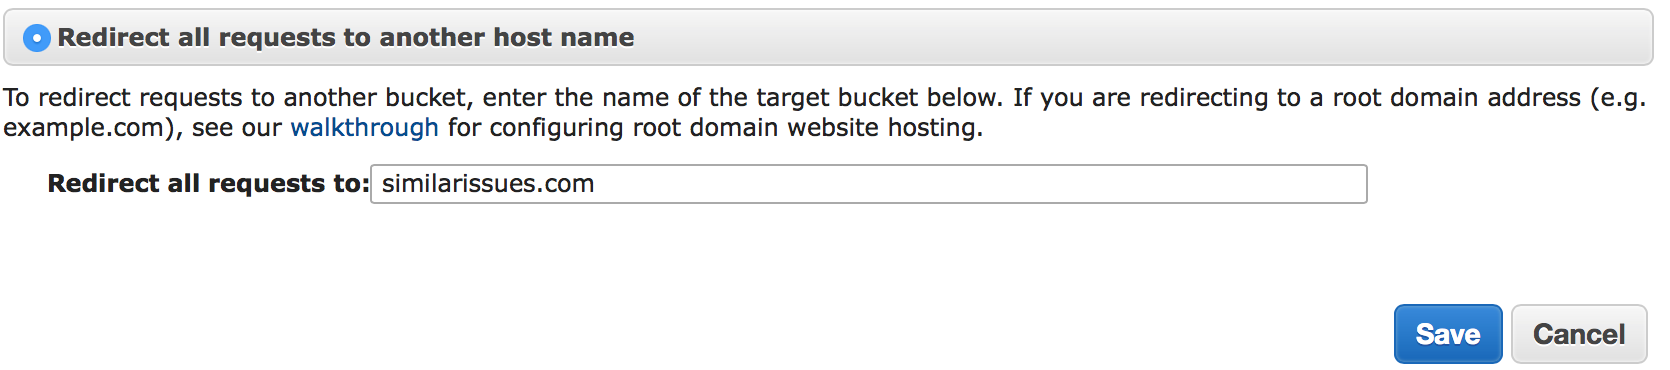 Redirect all requests to another host name